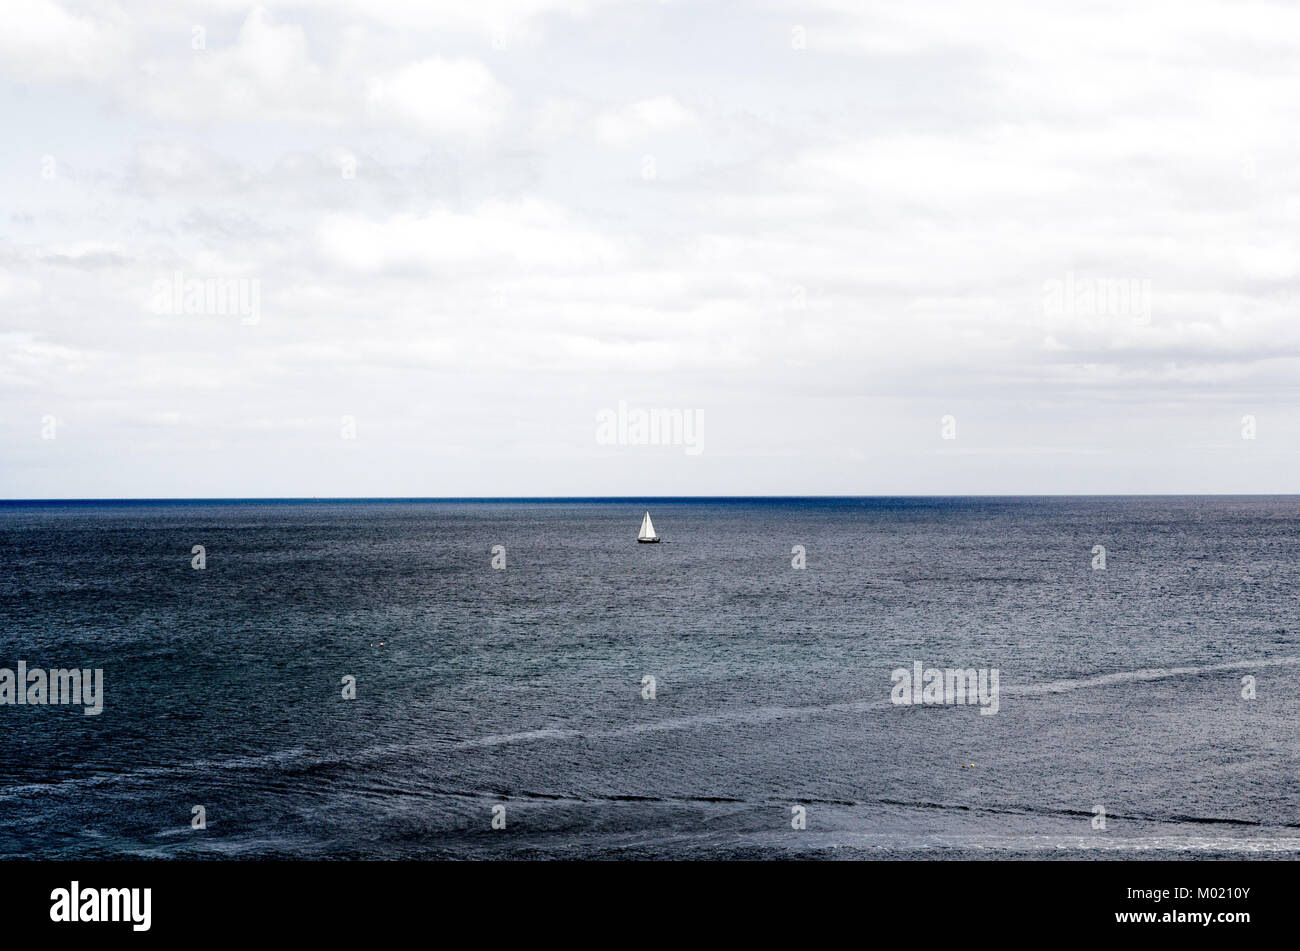 Sail boat on sea under cloudy sky off the coast of Mevagissey, Cornwall Stock Photo